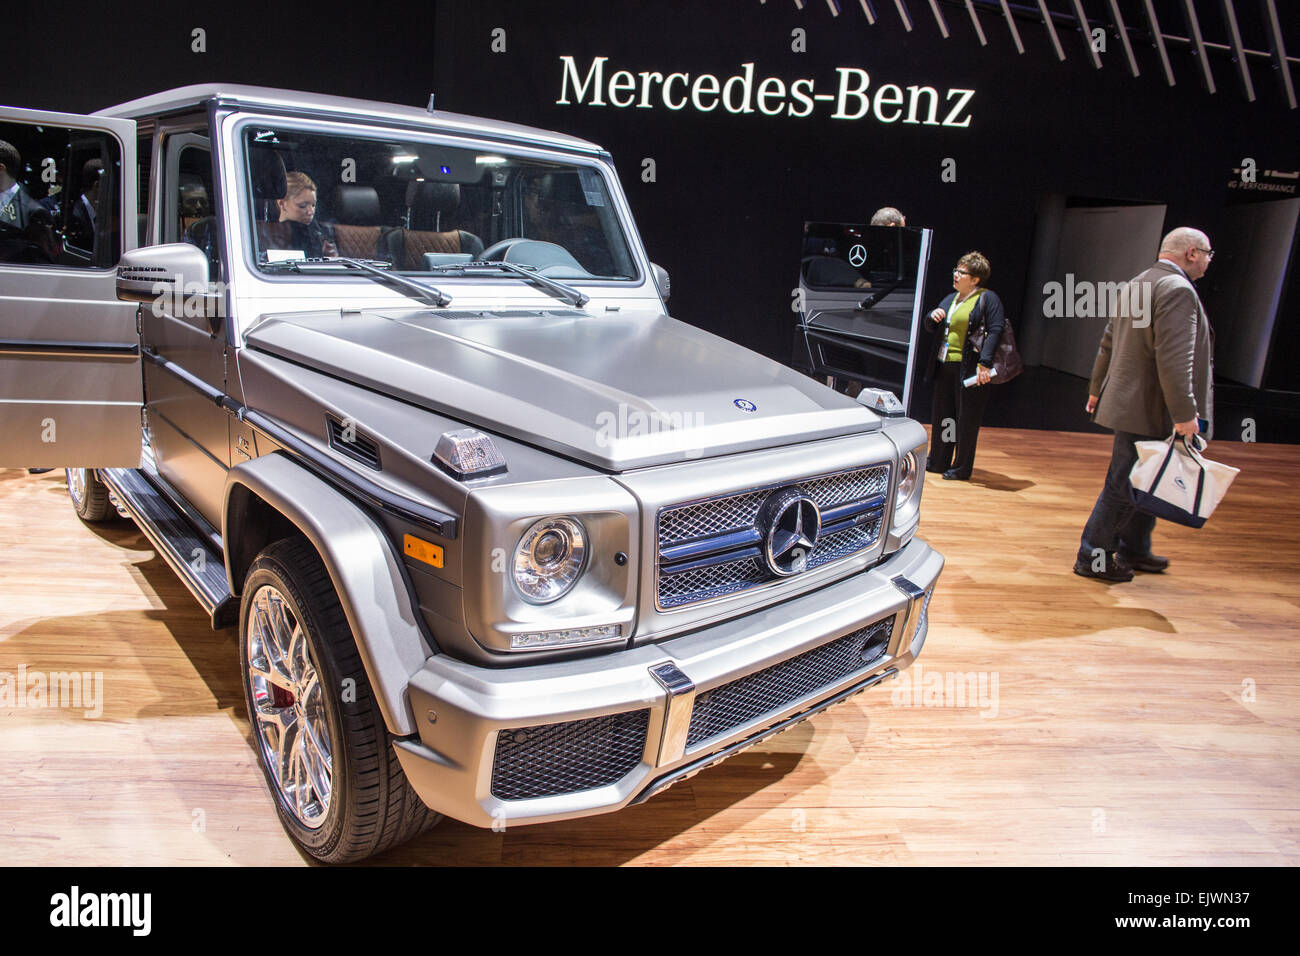 A Mercedes Benz G65 Amg On Display The The New York International Auto Show The Suv Boasts A 12 Cylinder Engine Credit Ed Lefkowicz Alamy Live News